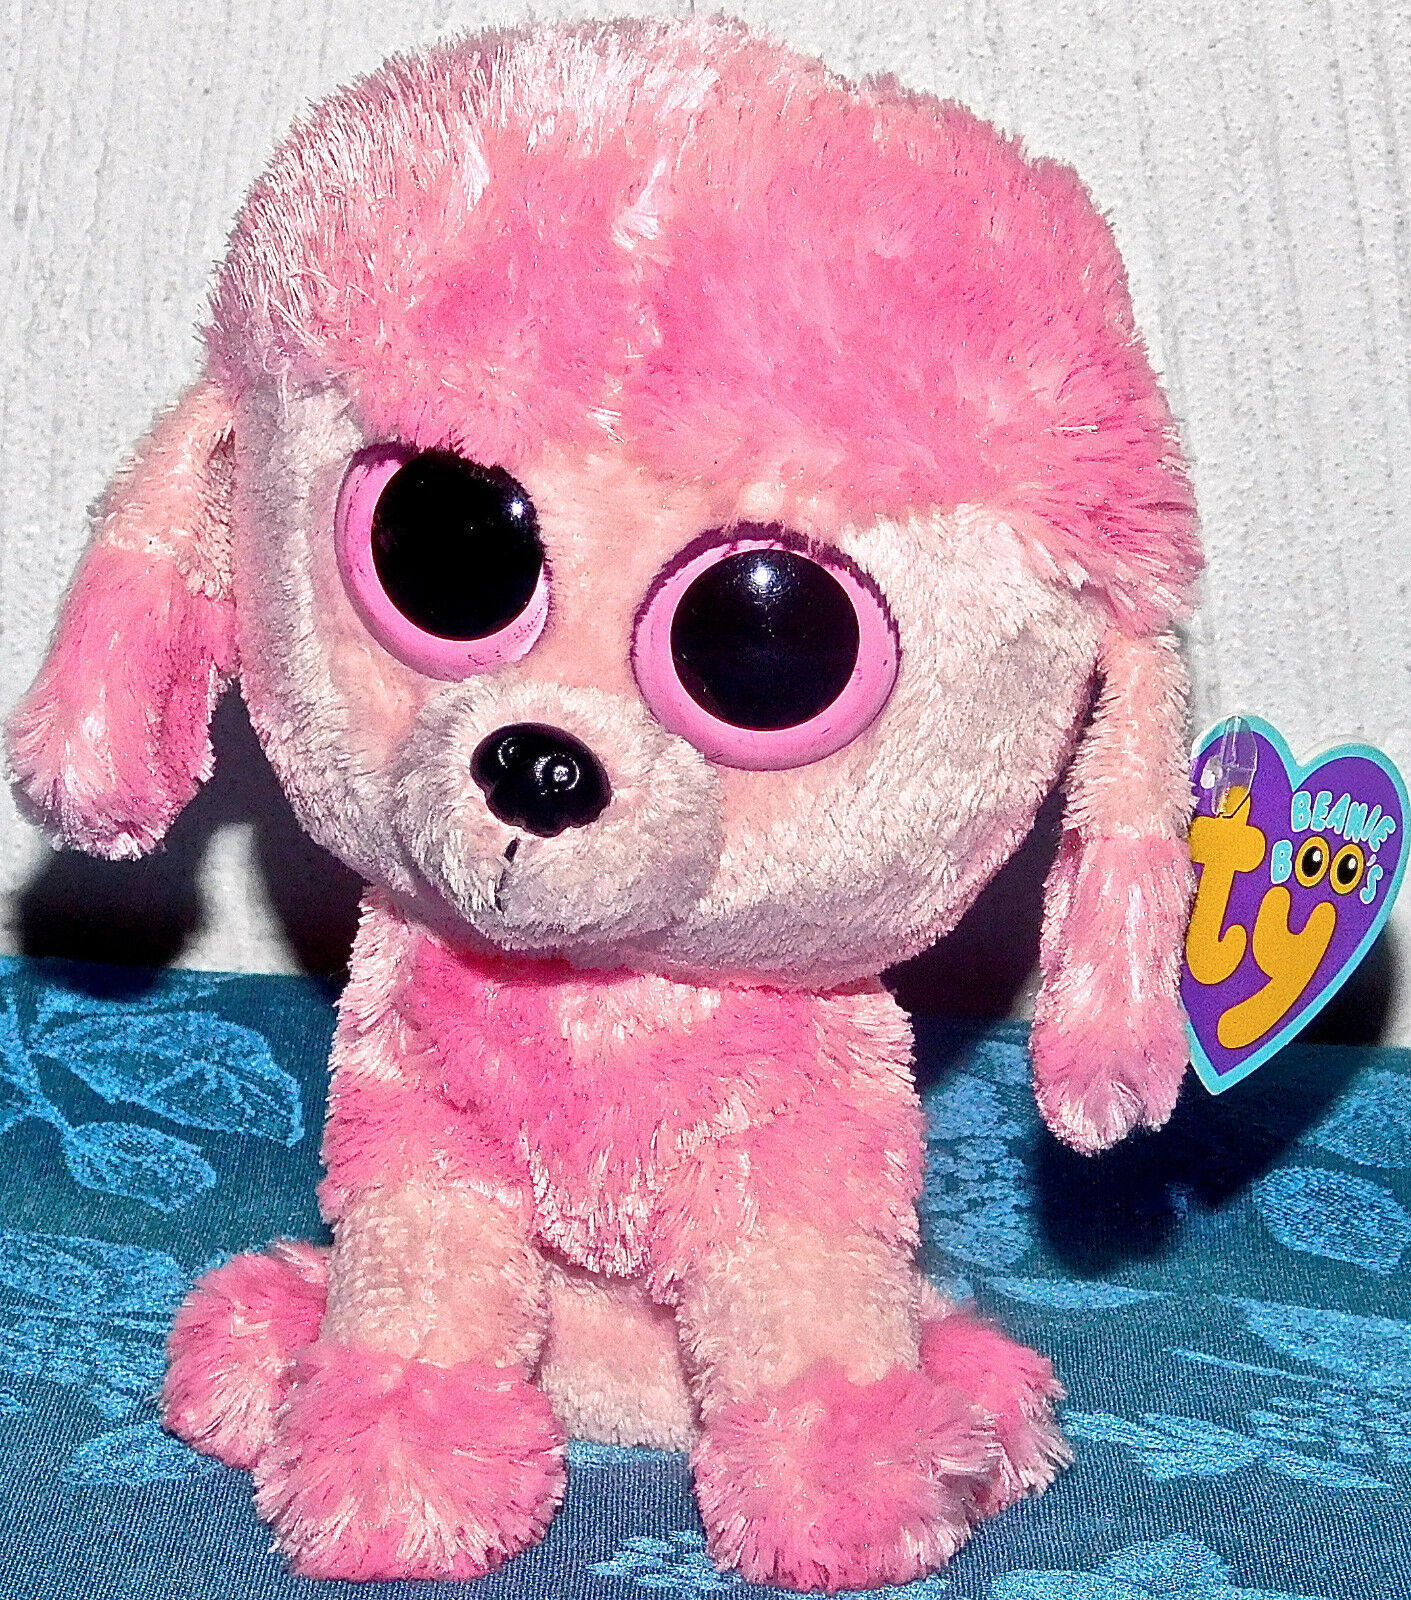 3dccca8cbc3 57. 57. Previous. New TY Beanie Boos PRINCESS PINK POODLE 6